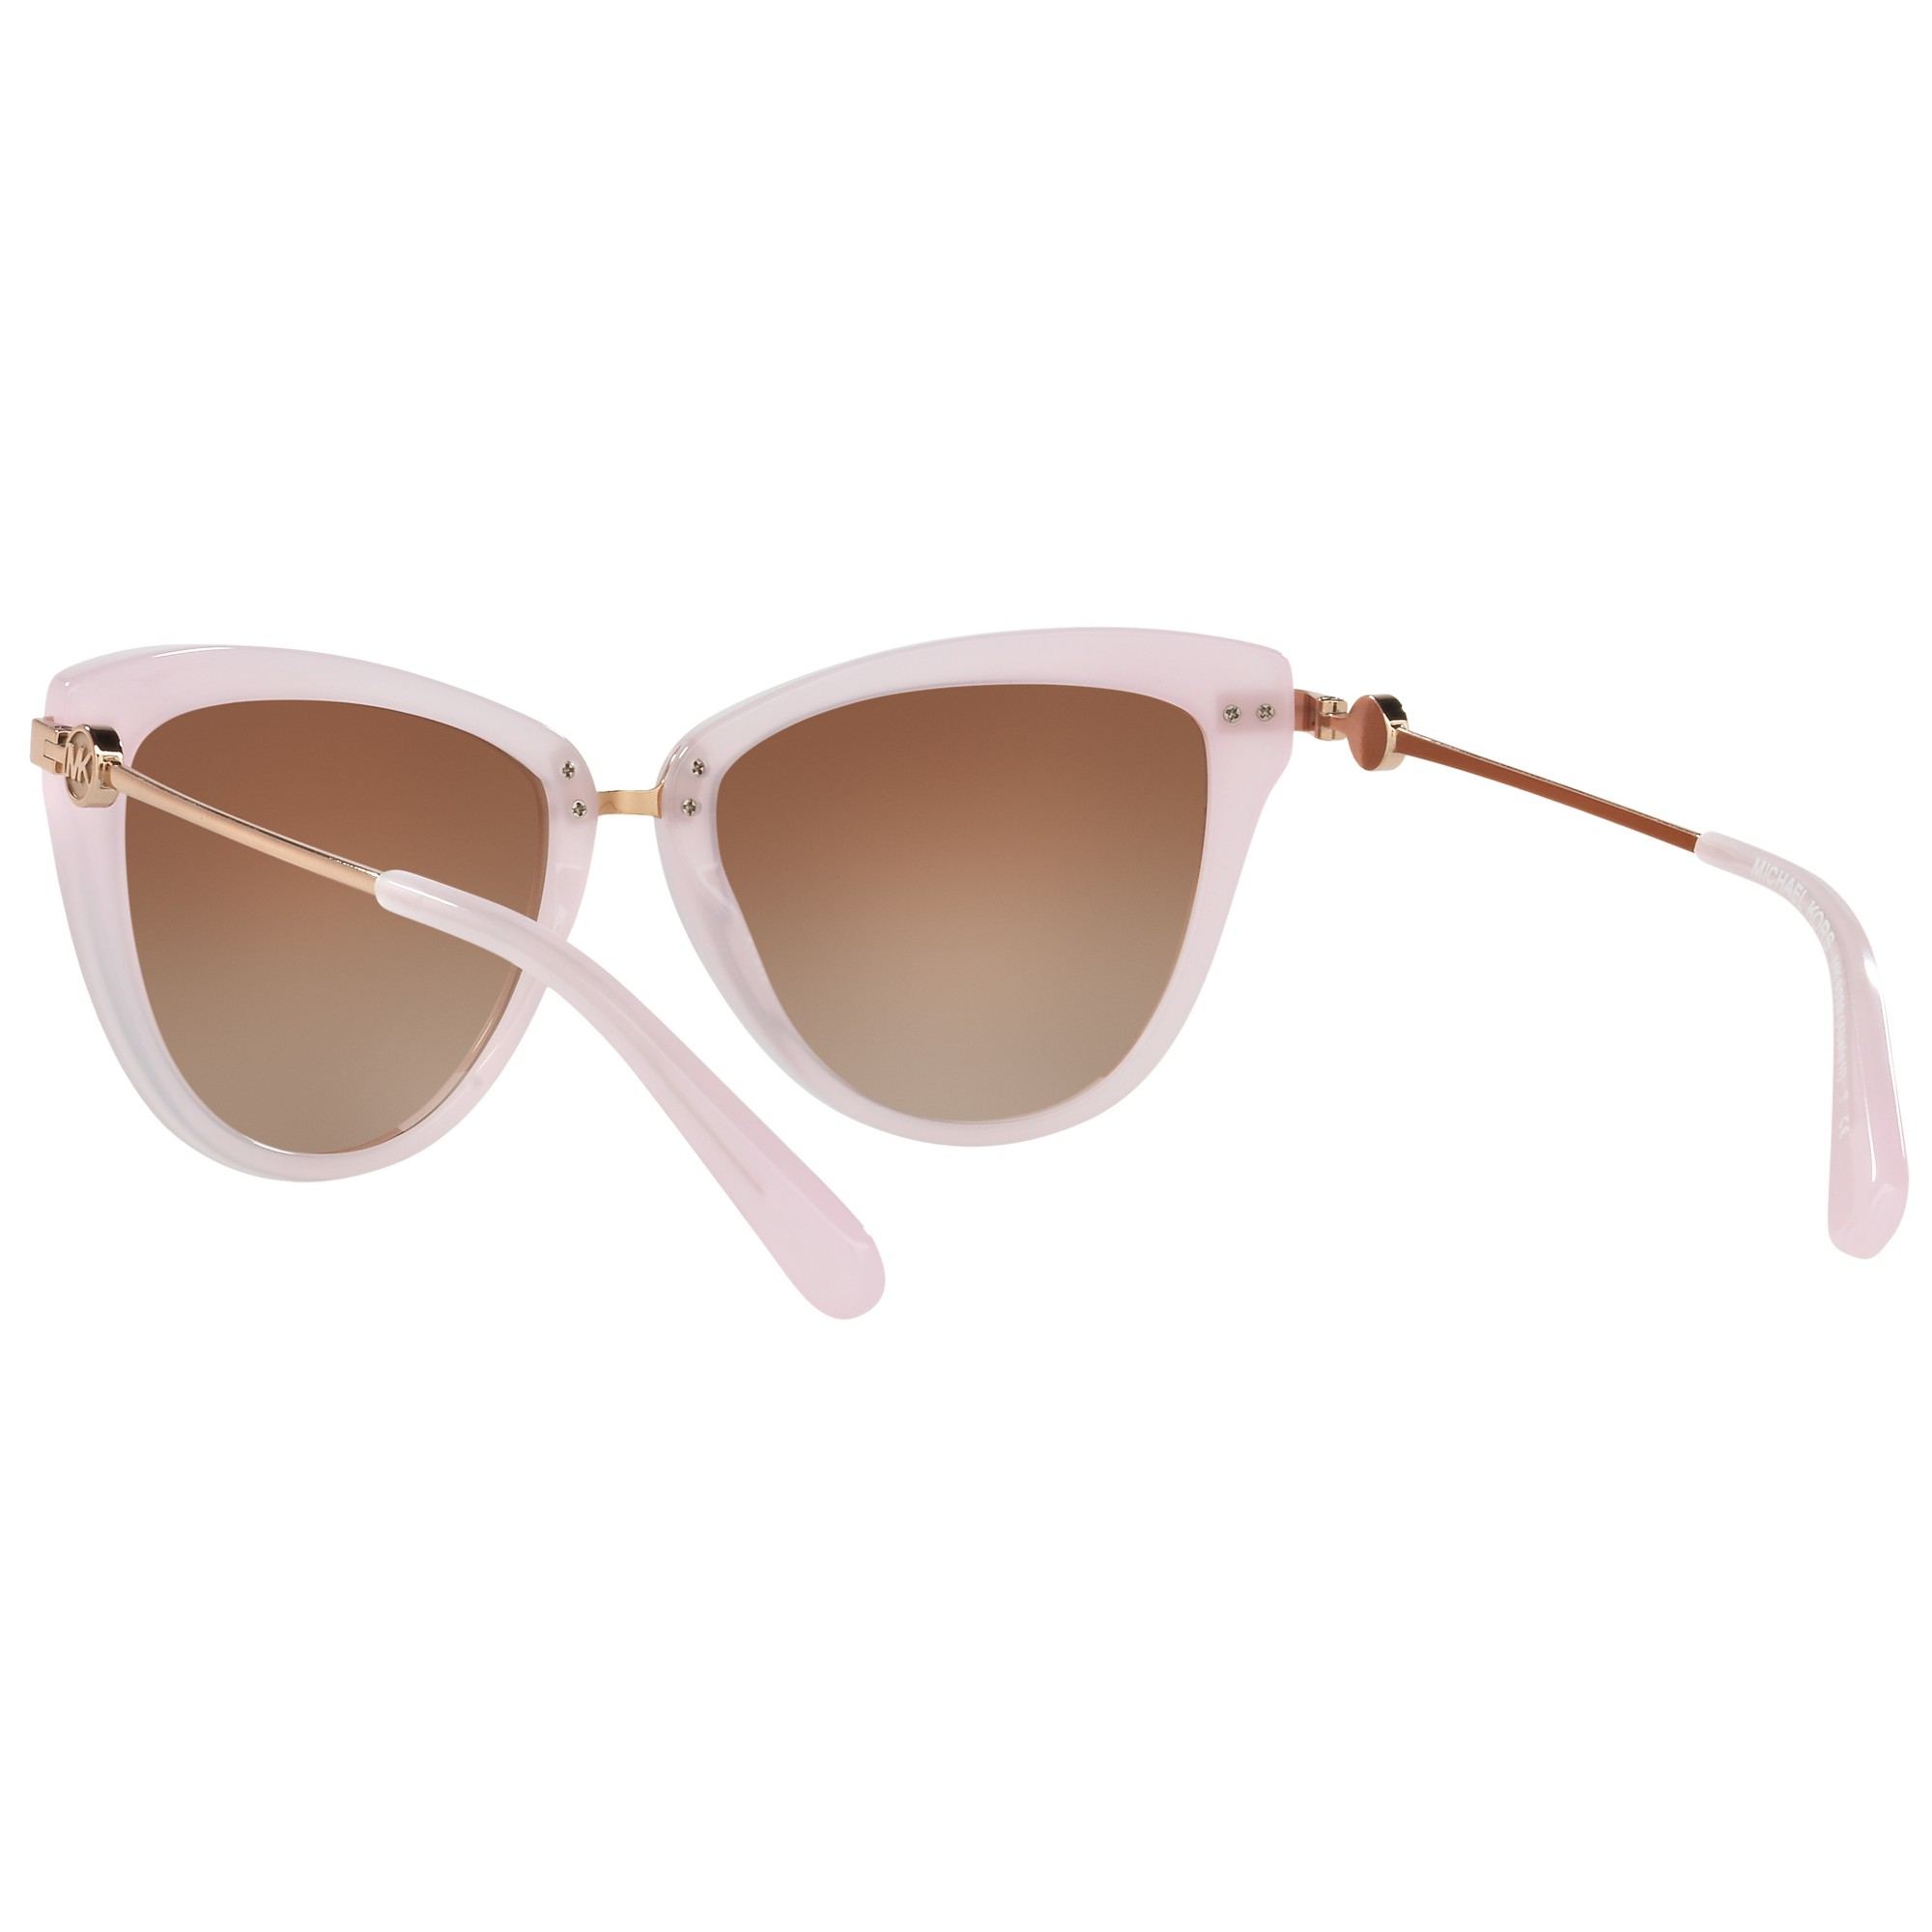 0e00d5fd9bff2 Michael Kors Mk6039 Abela Ii Cat s Eye Sunglasses in Pink - Lyst